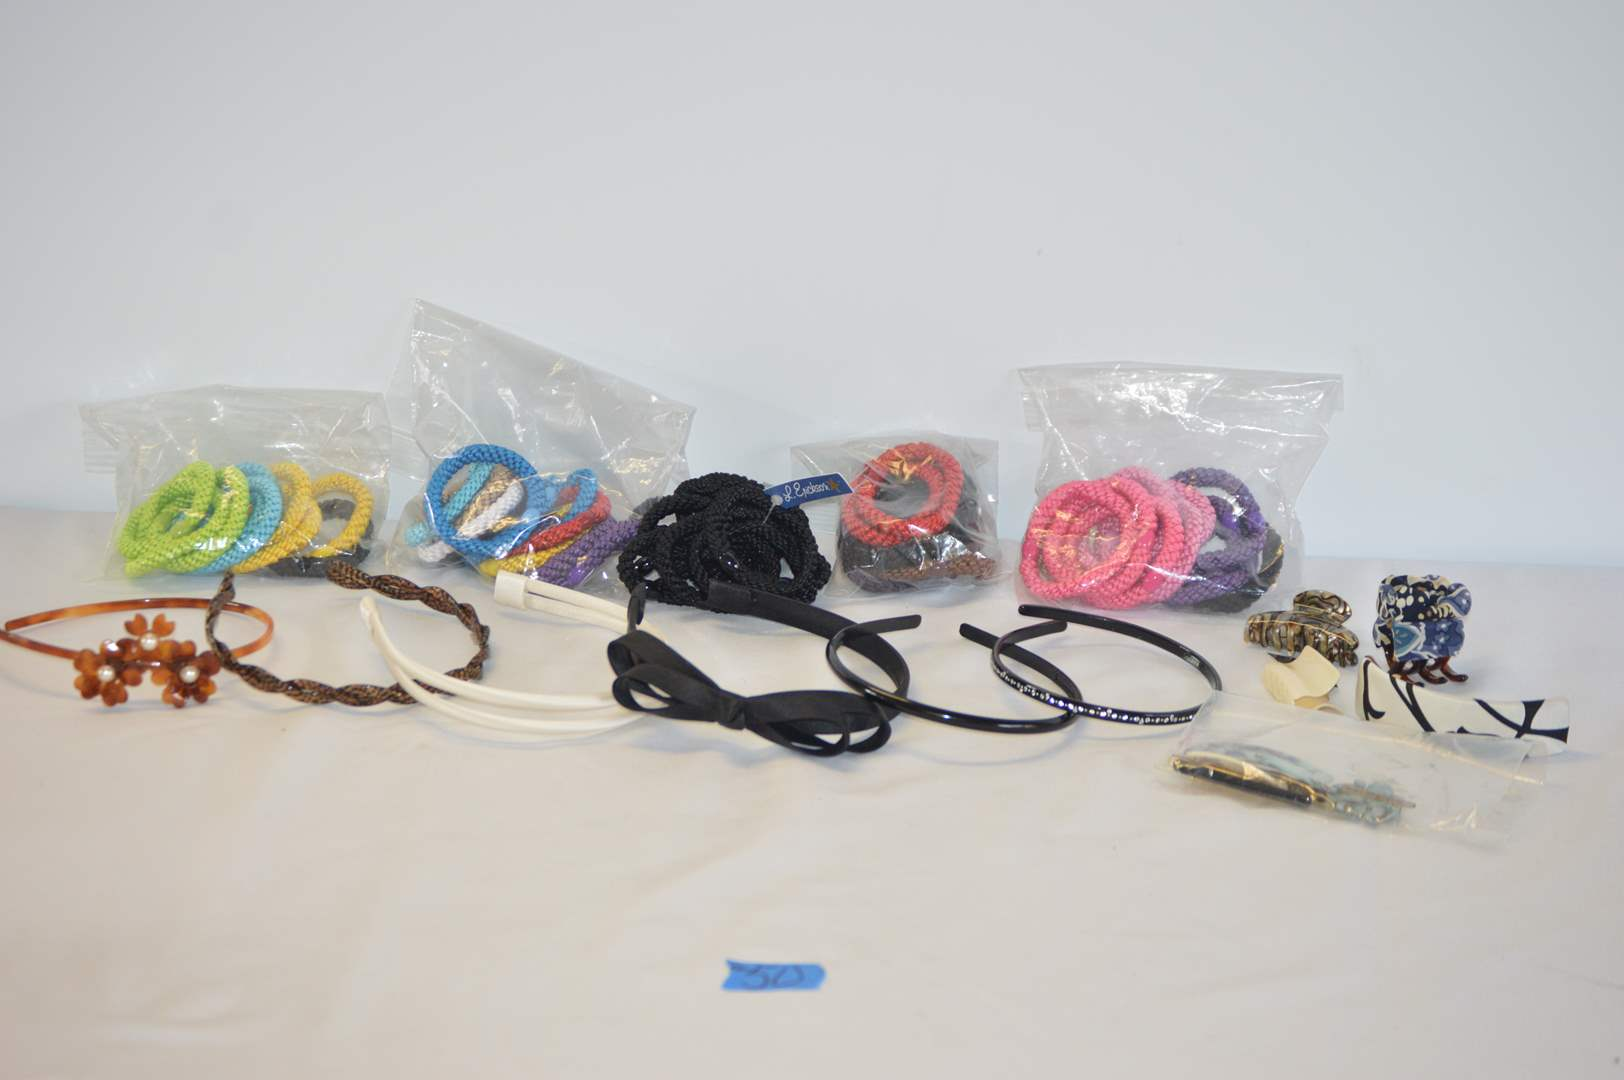 Lot # 50 L. Erikson Grab & Go ponytail holders, Headbands and hair clips (main image)